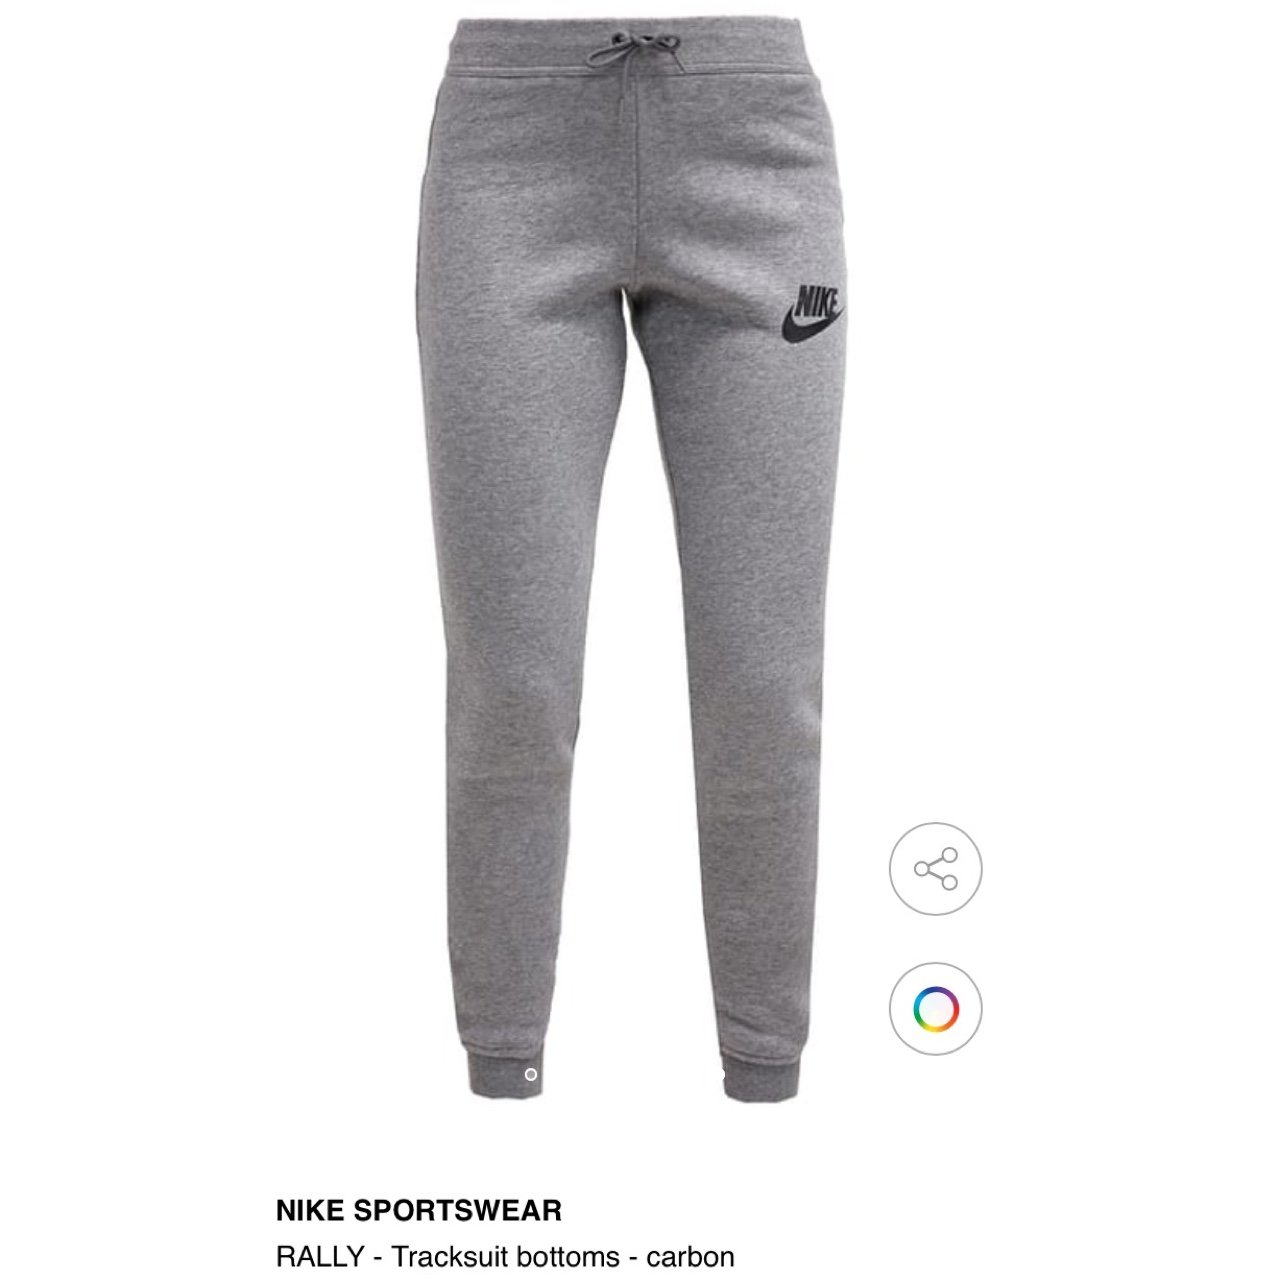 b7feaa037247 Women s grey skinny Nike joggers tracksuit bottoms. Only in - Depop